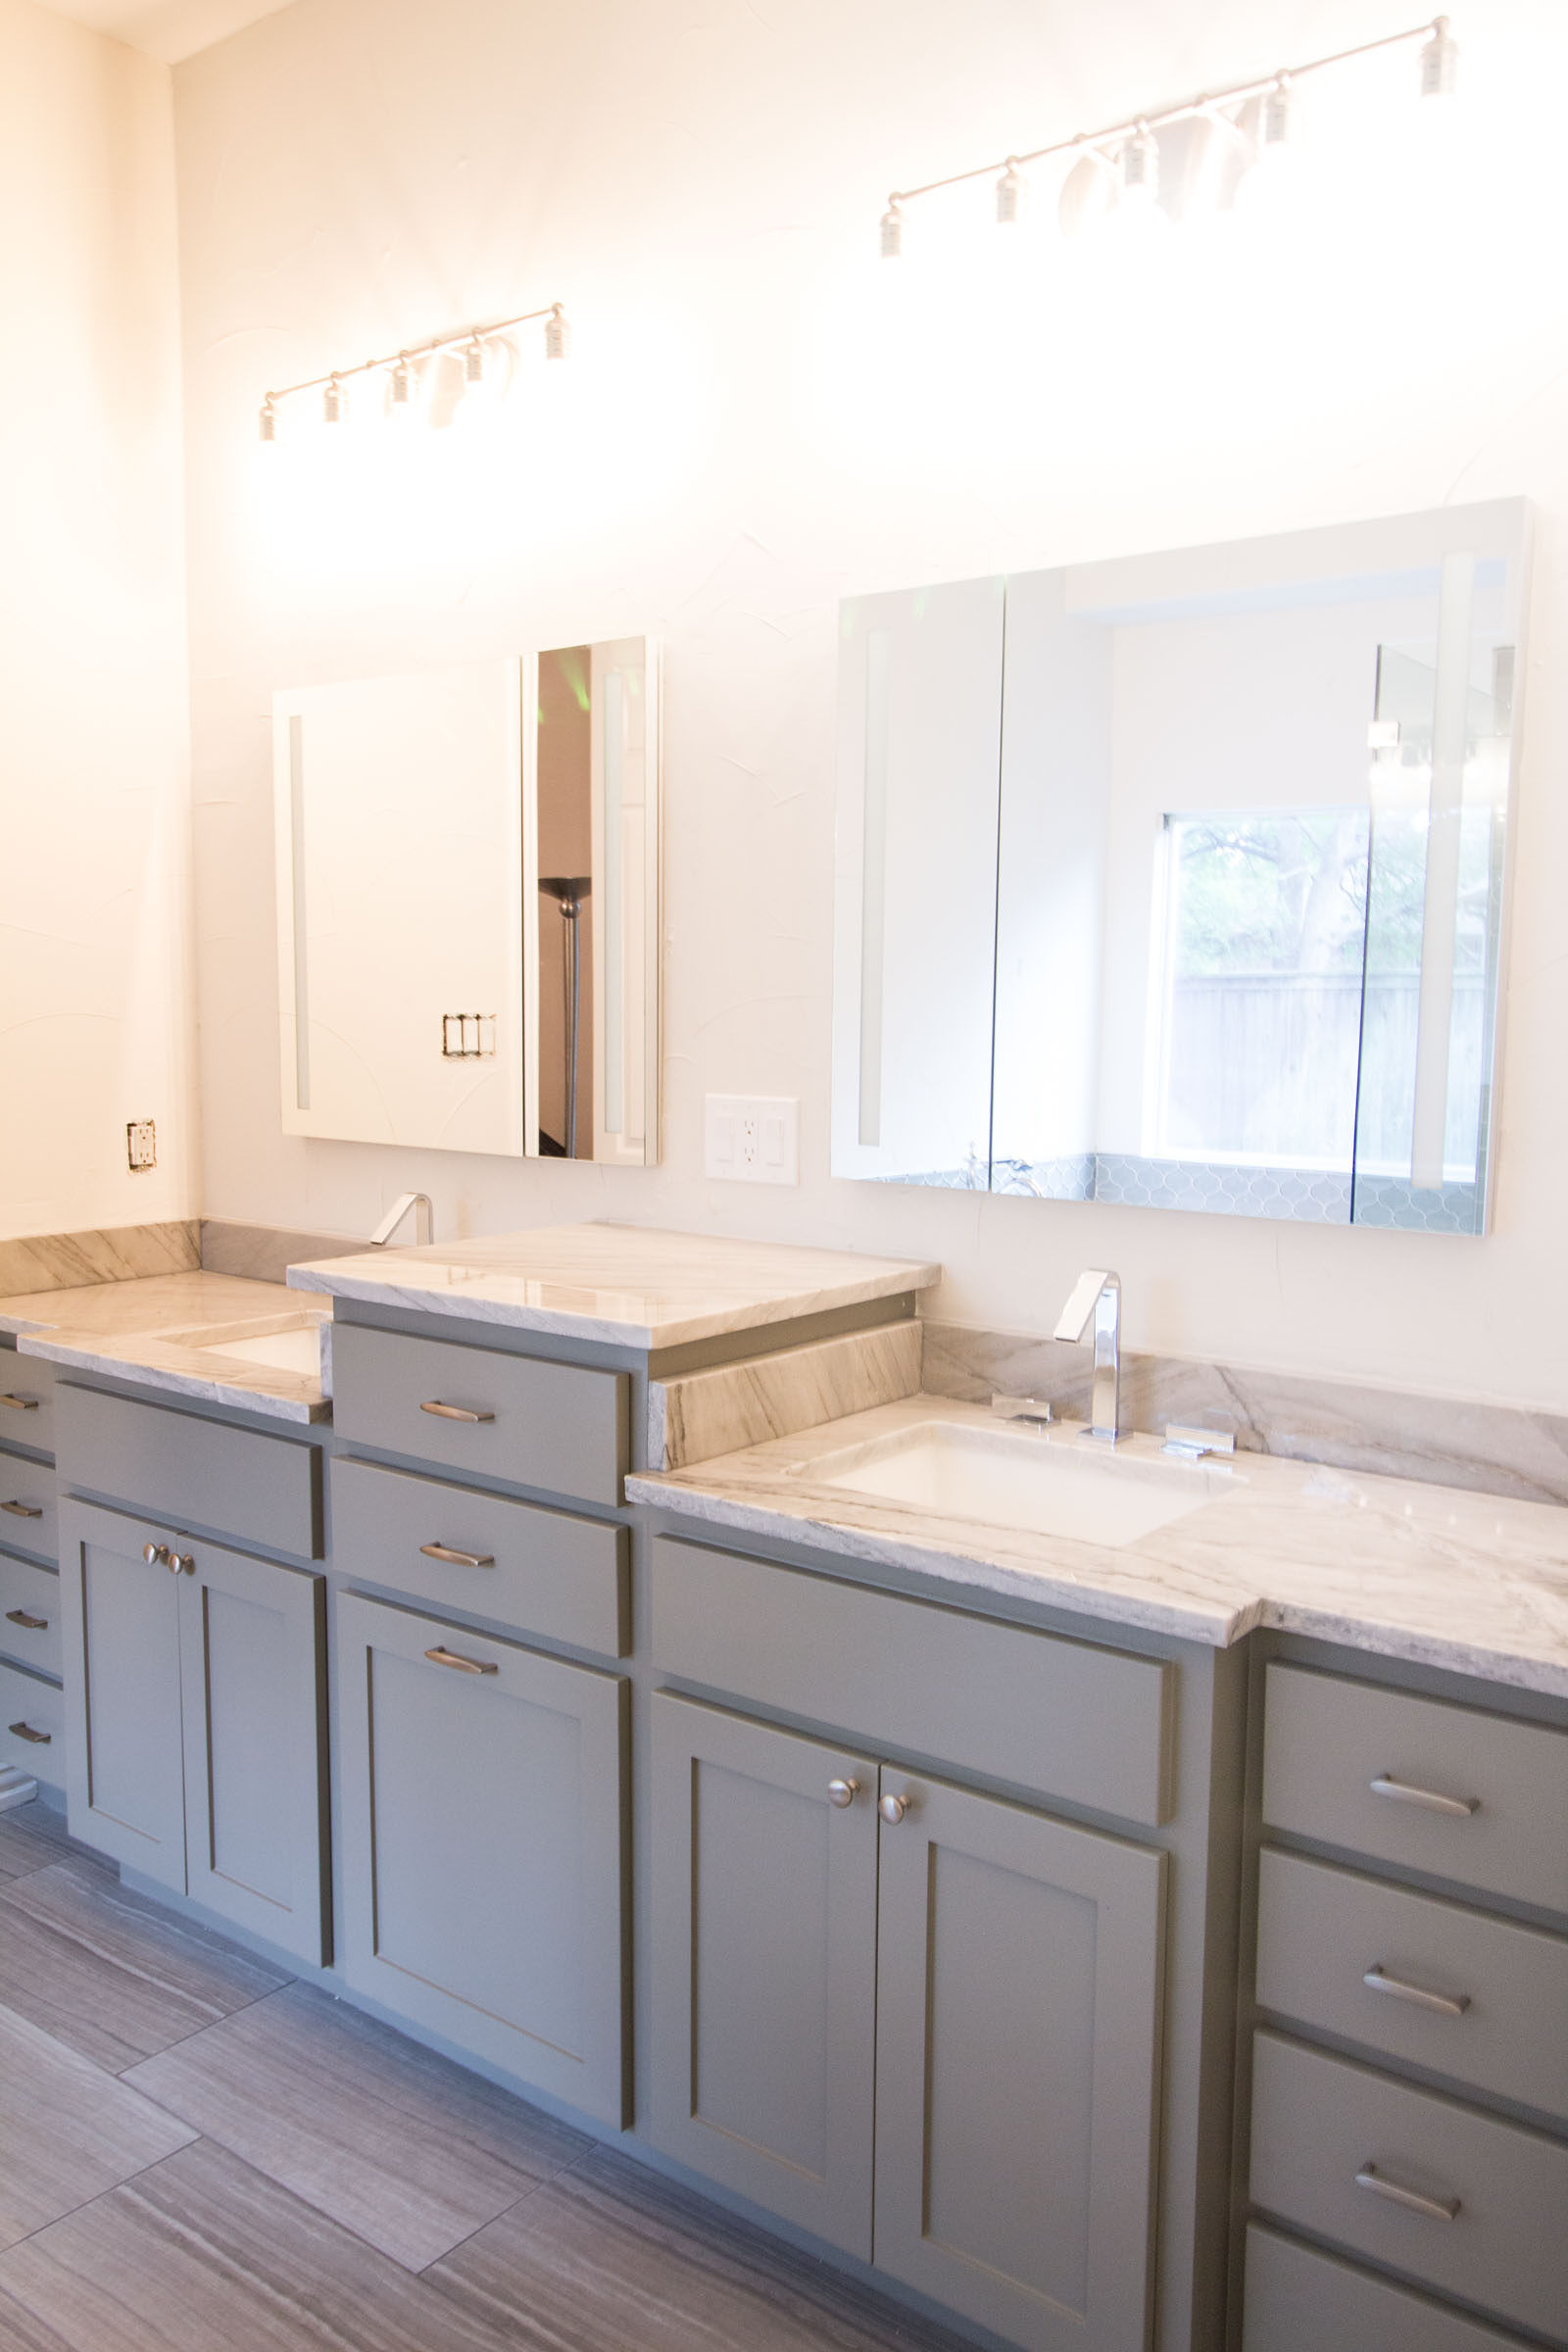 Contemporary bathroom remodel, grey cabinets, bright lighting, lots of counter space